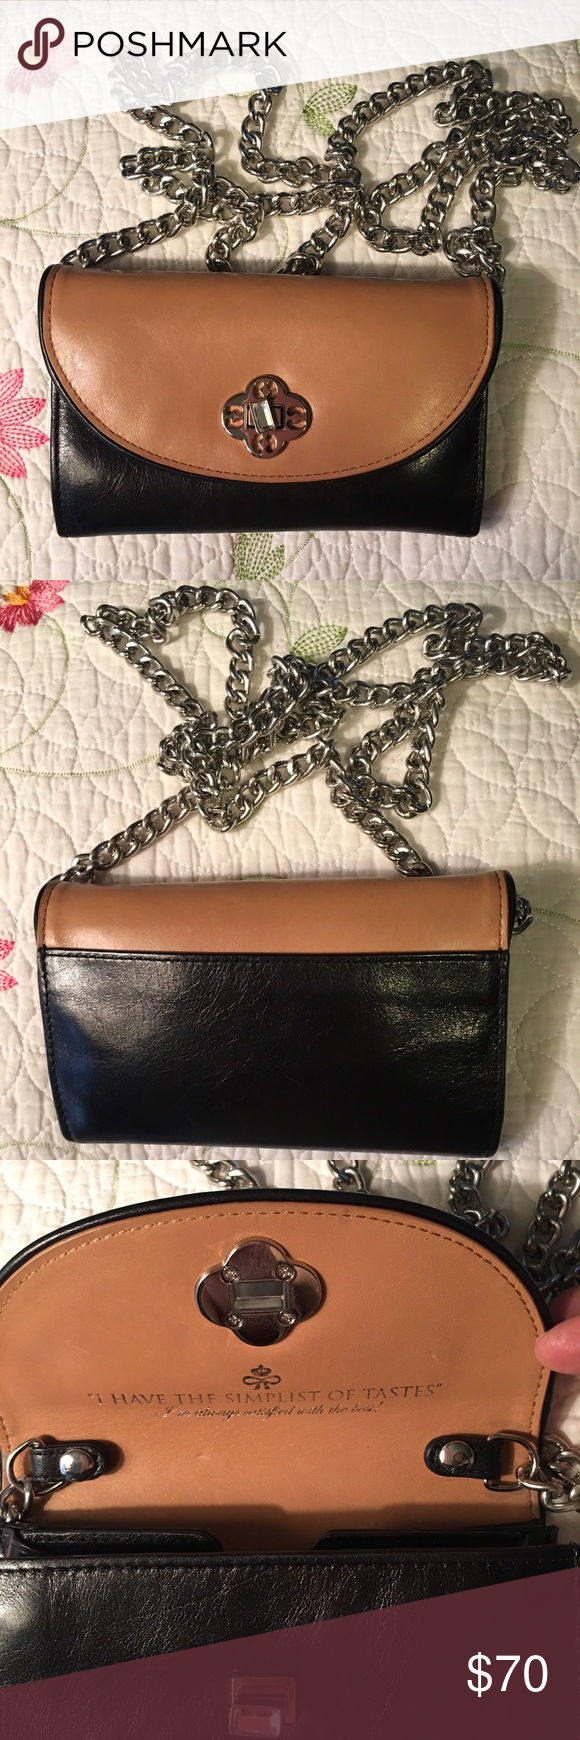 Brighton-My Flat in London Cross-Body Beautiful tan and black, no scratches, no marks, silver chain, perfect for several cards and a cell phone (6S Plus does not fit), comes with dust bag Brighton My Flat in London Bags Crossbody Bags